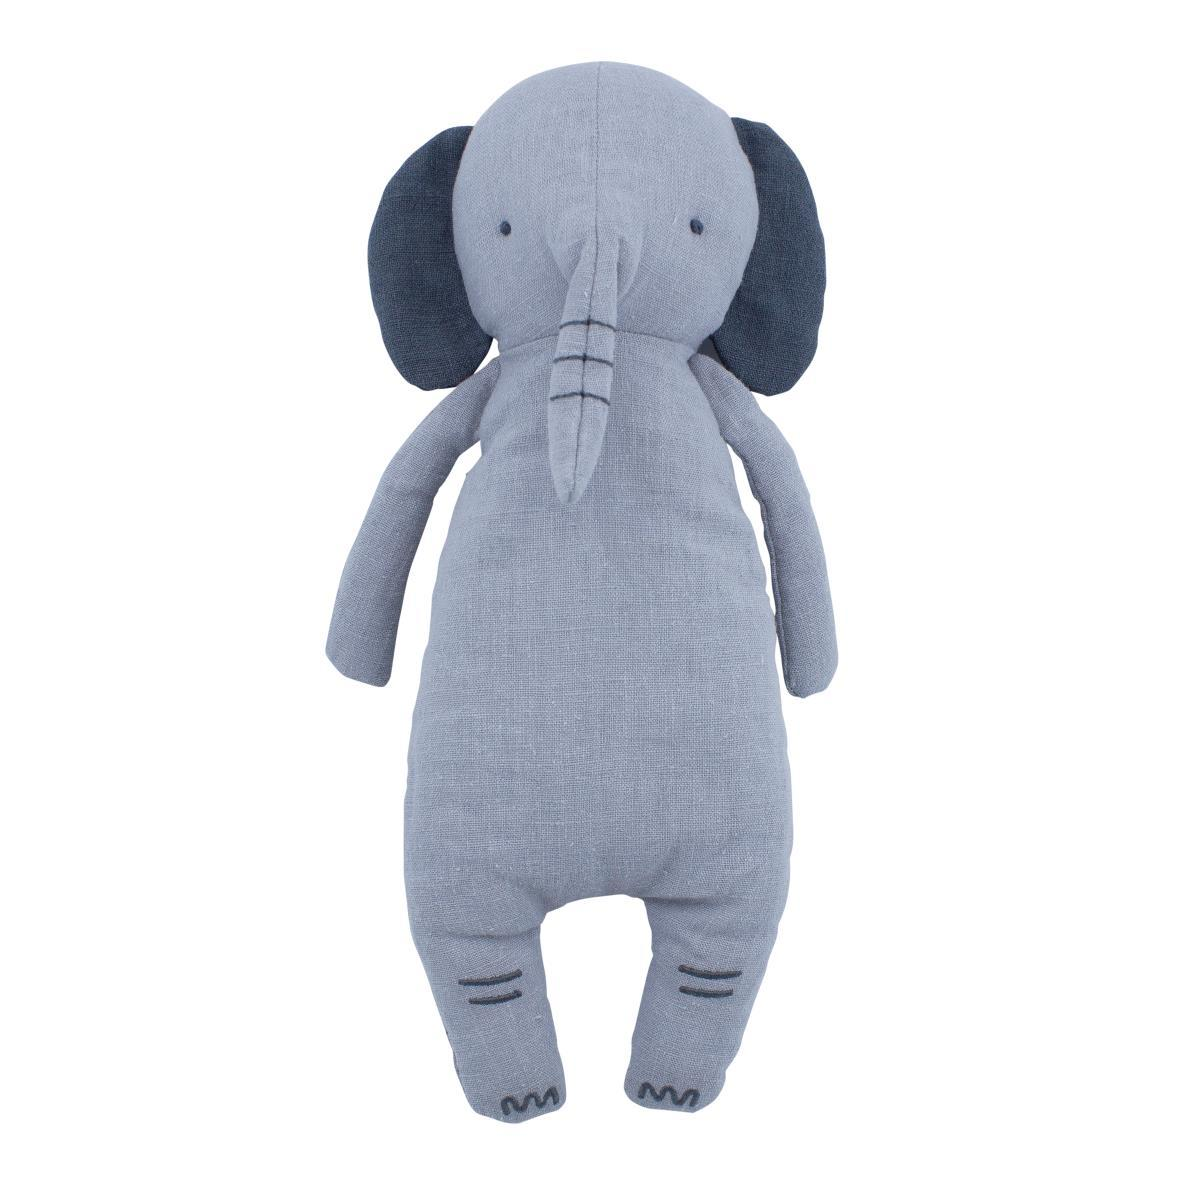 Sebra Linen Stuffed Toy - Finley The Elephant